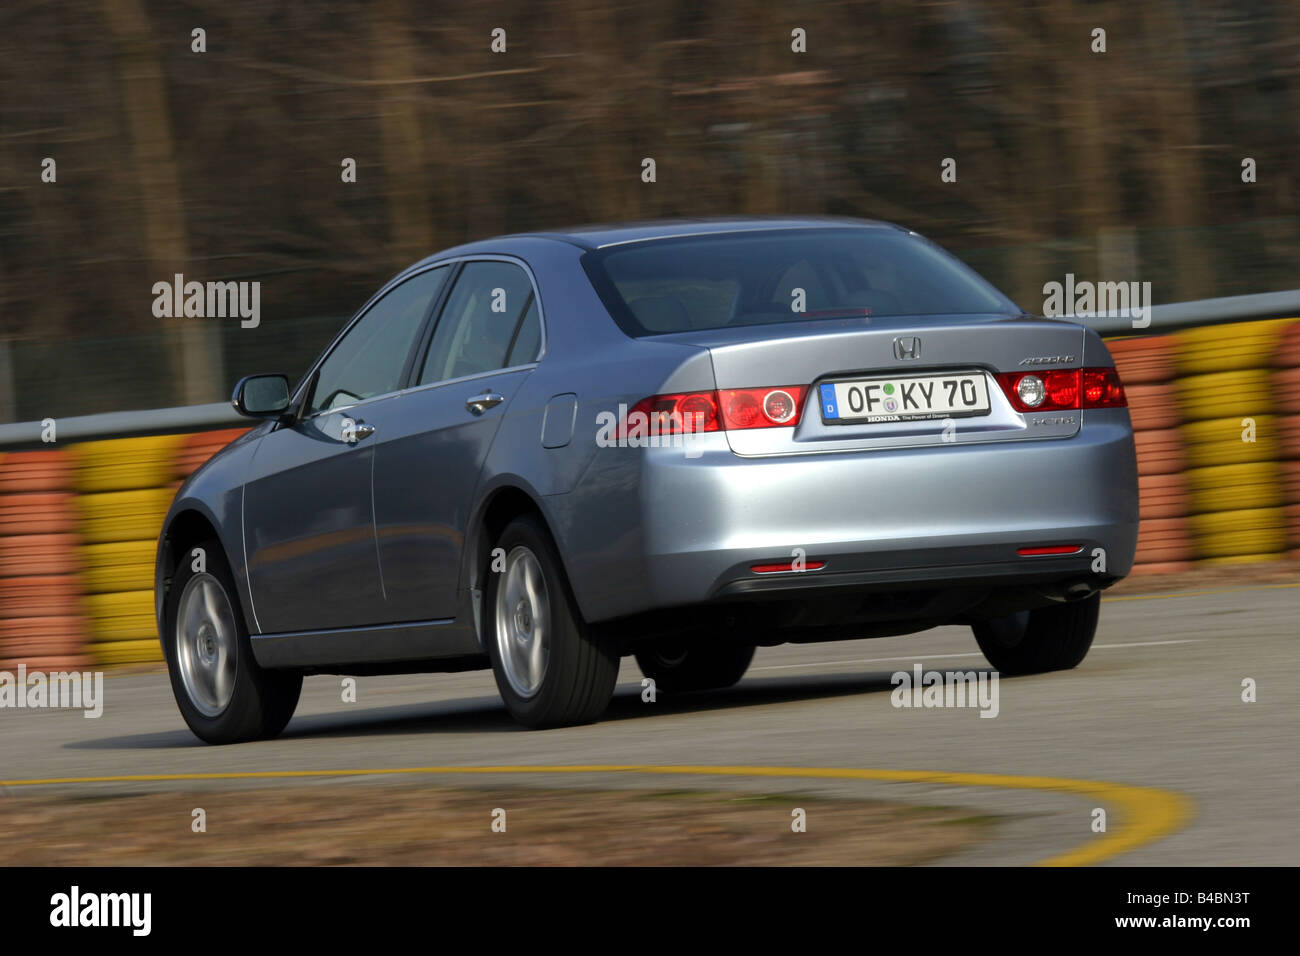 honda accord i ctdi photos honda accord i ctdi images alamy. Black Bedroom Furniture Sets. Home Design Ideas